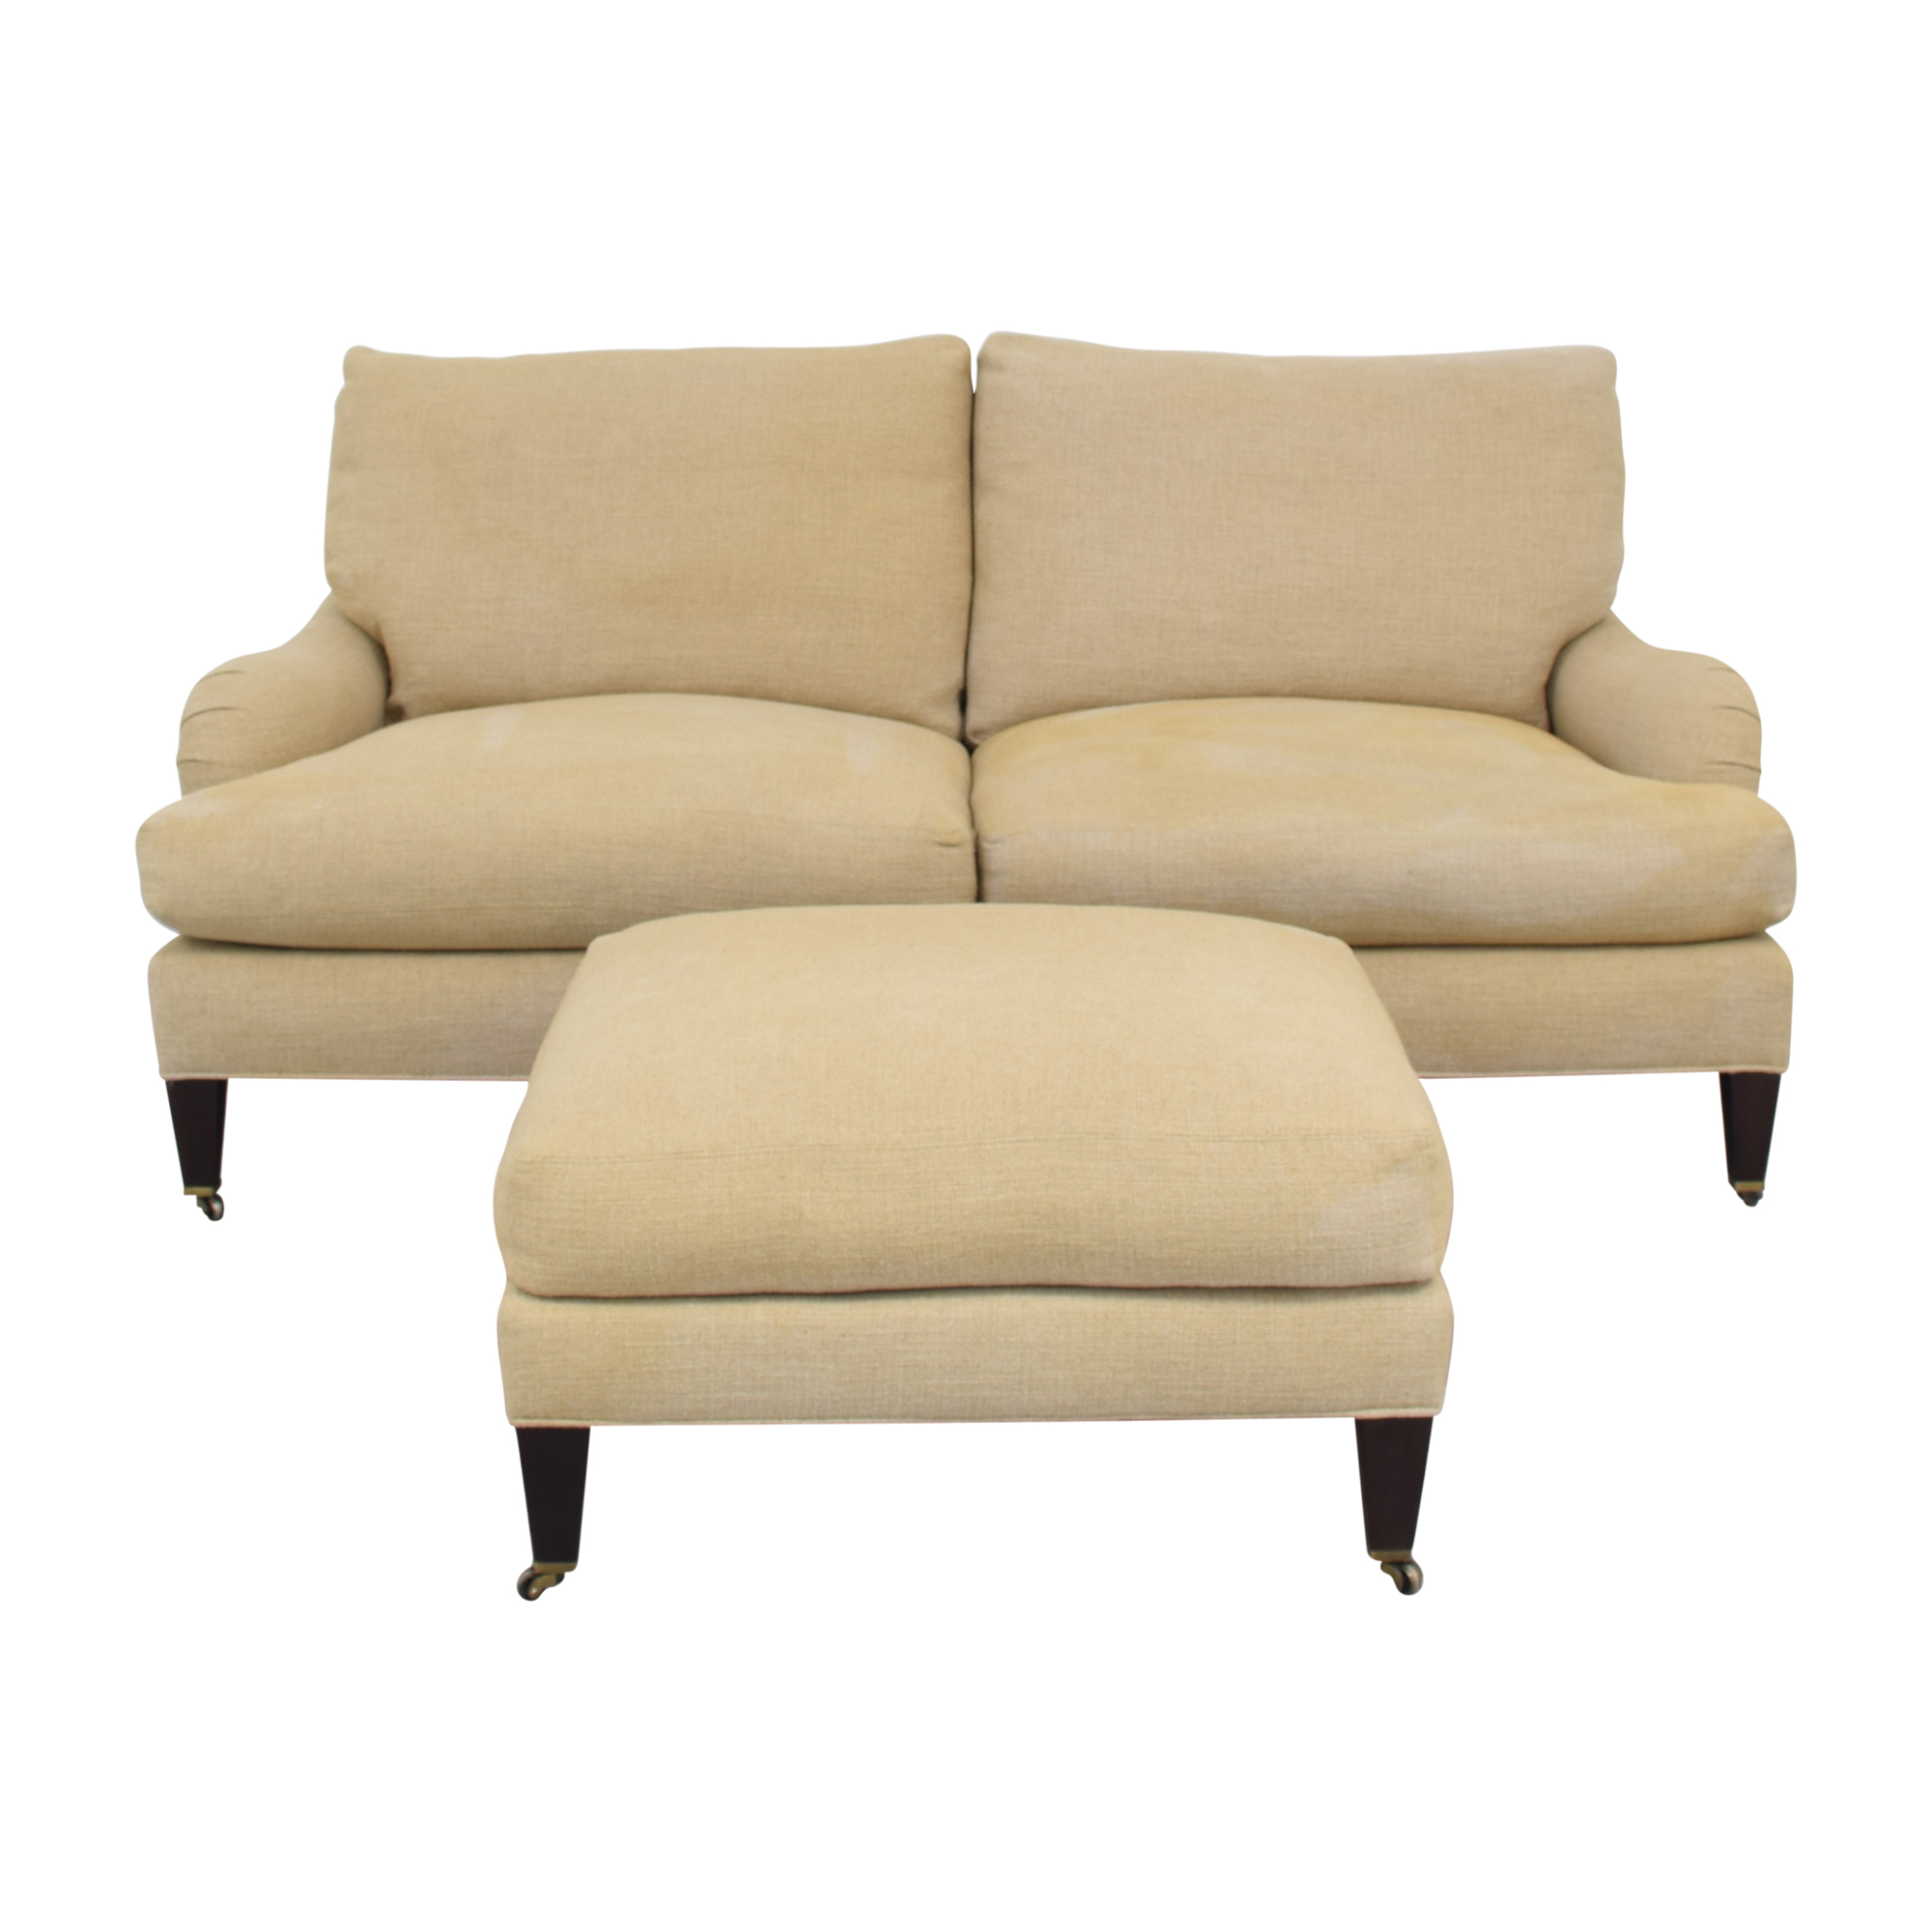 Crate & Barrel Crate & Barrel Essex Sofa with Ottoman for sale